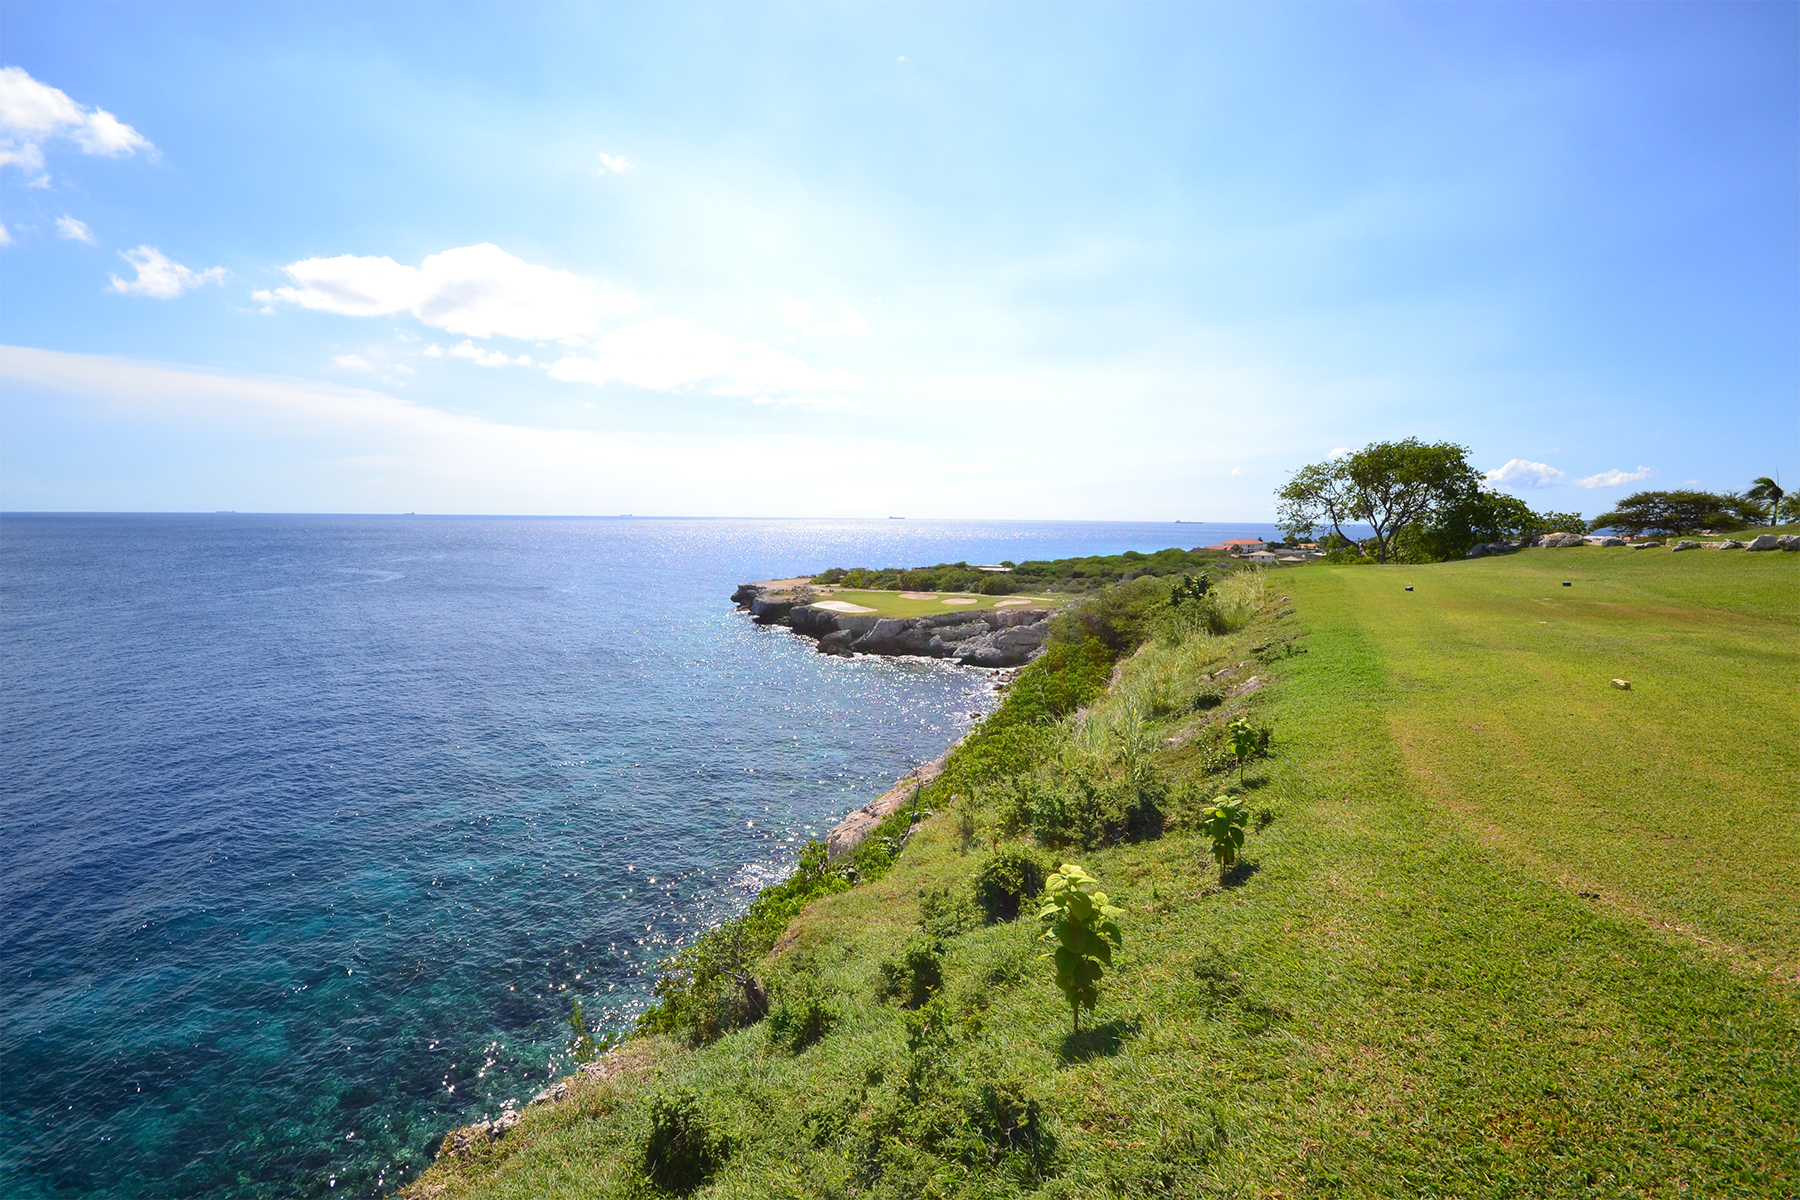 Additional photo for property listing at Blue Bay Ocean Front Lot 库拉索岛其他城市, 库拉索岛城市 库拉索岛